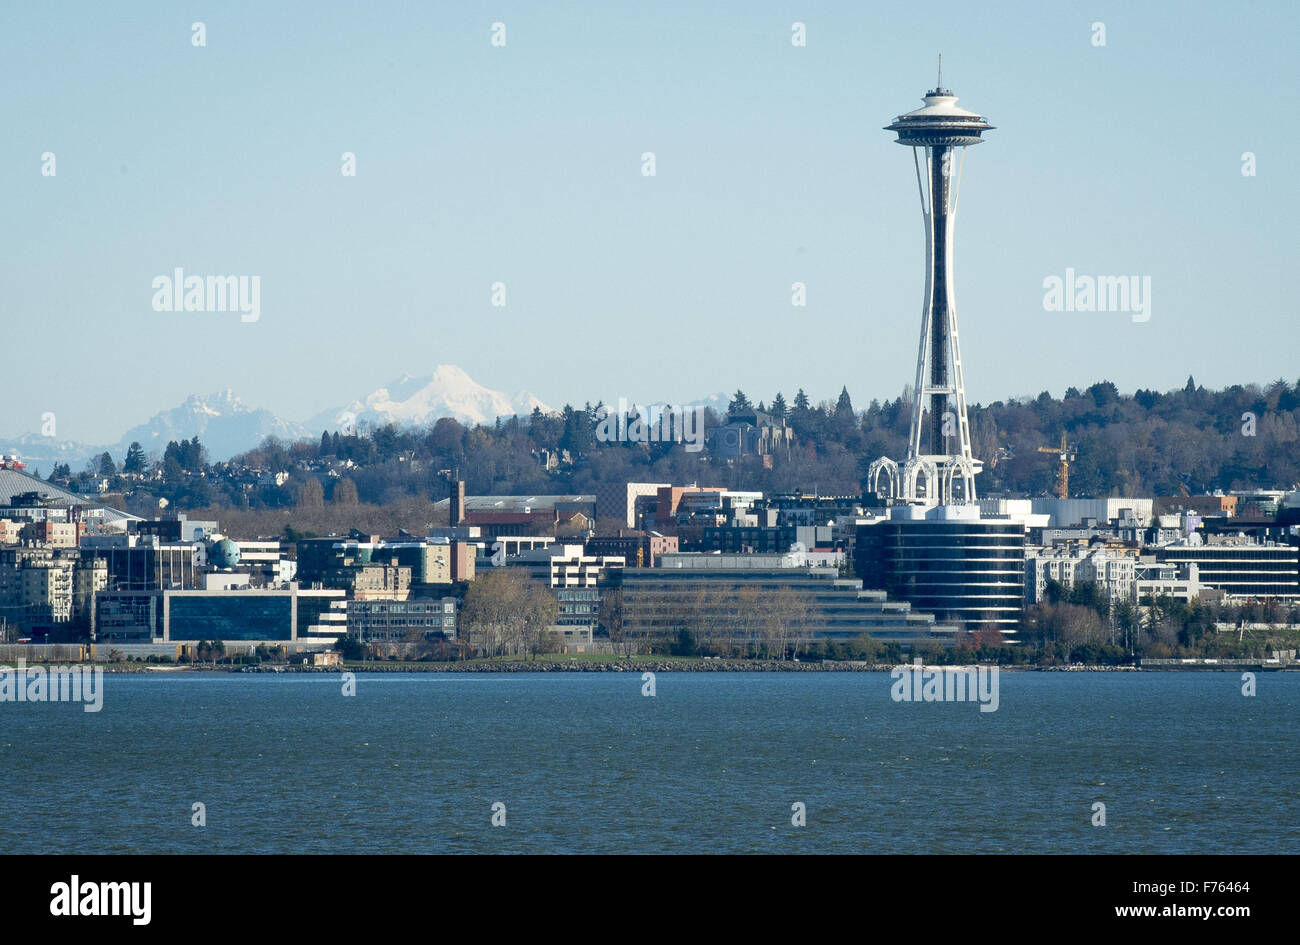 Seattle, Washington, USA. 21st Nov, 2015. Seattle's Space Needle, located within Seattle Center, can be seen from Stock Photo